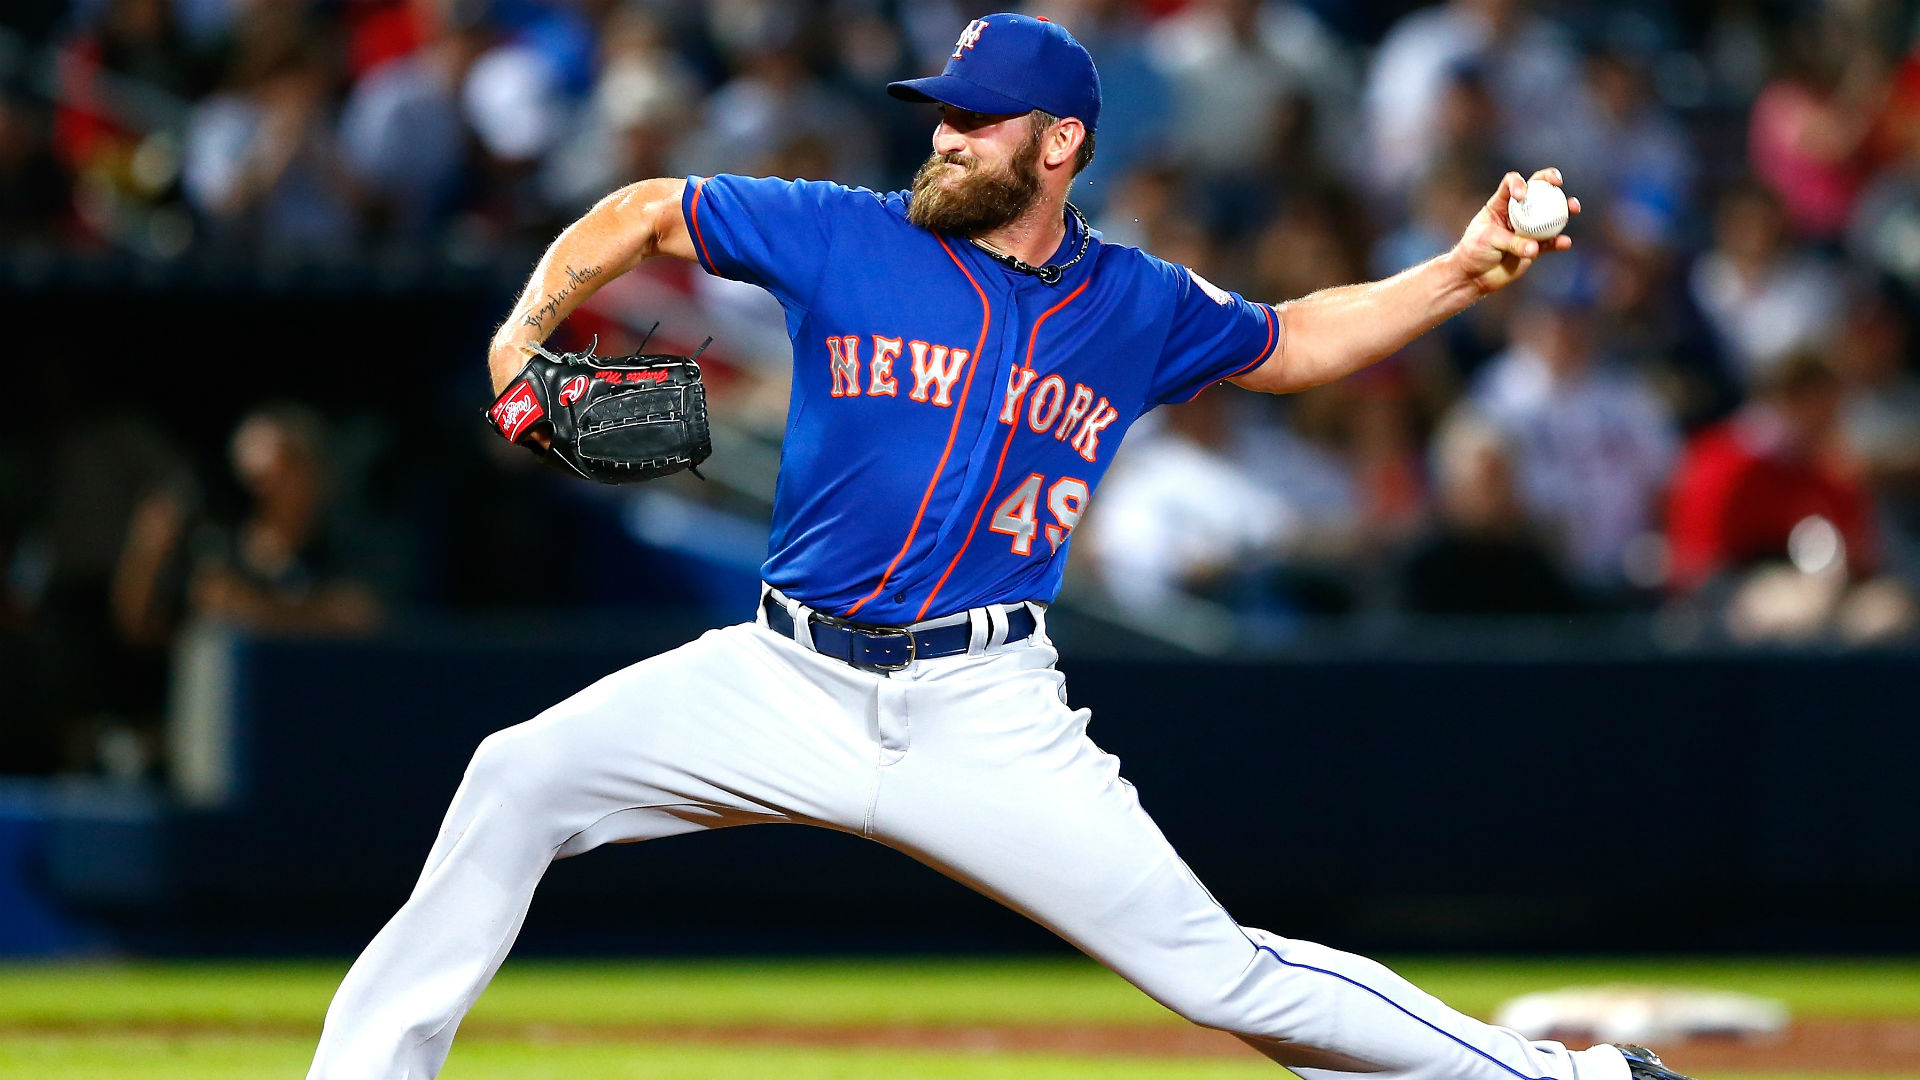 FantasyAlarm.com: Week 3 streaming pitcher options